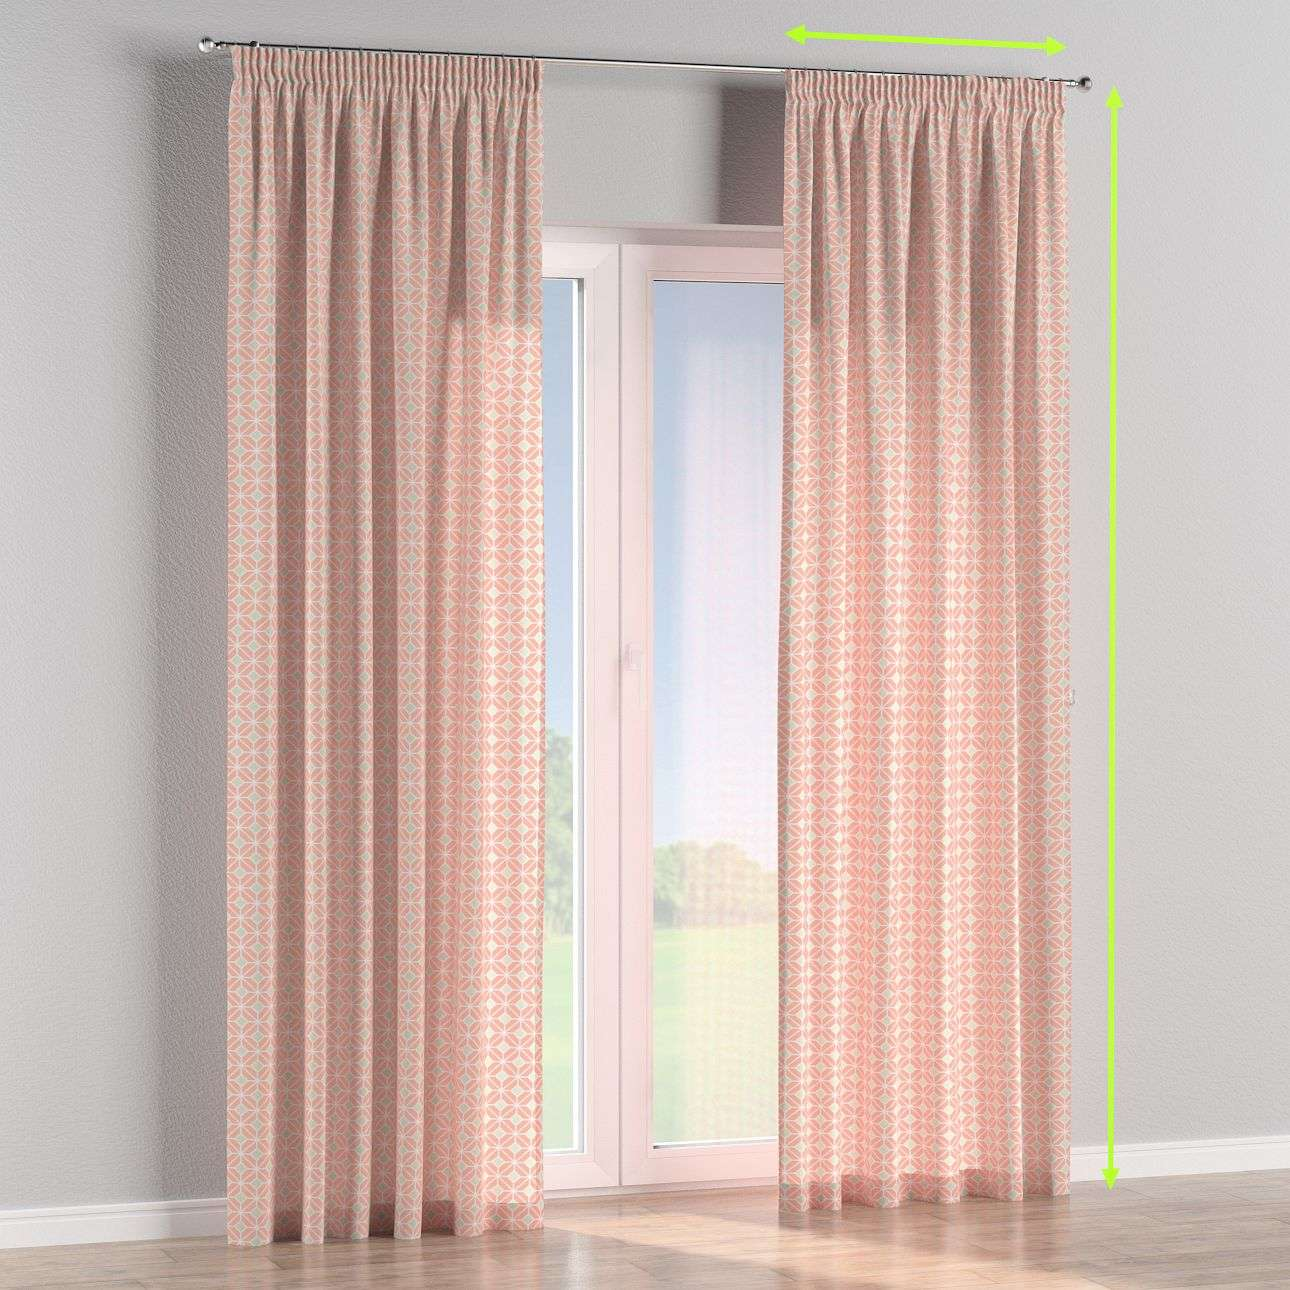 Pencil pleat lined curtains in collection Geometric, fabric: 141-48